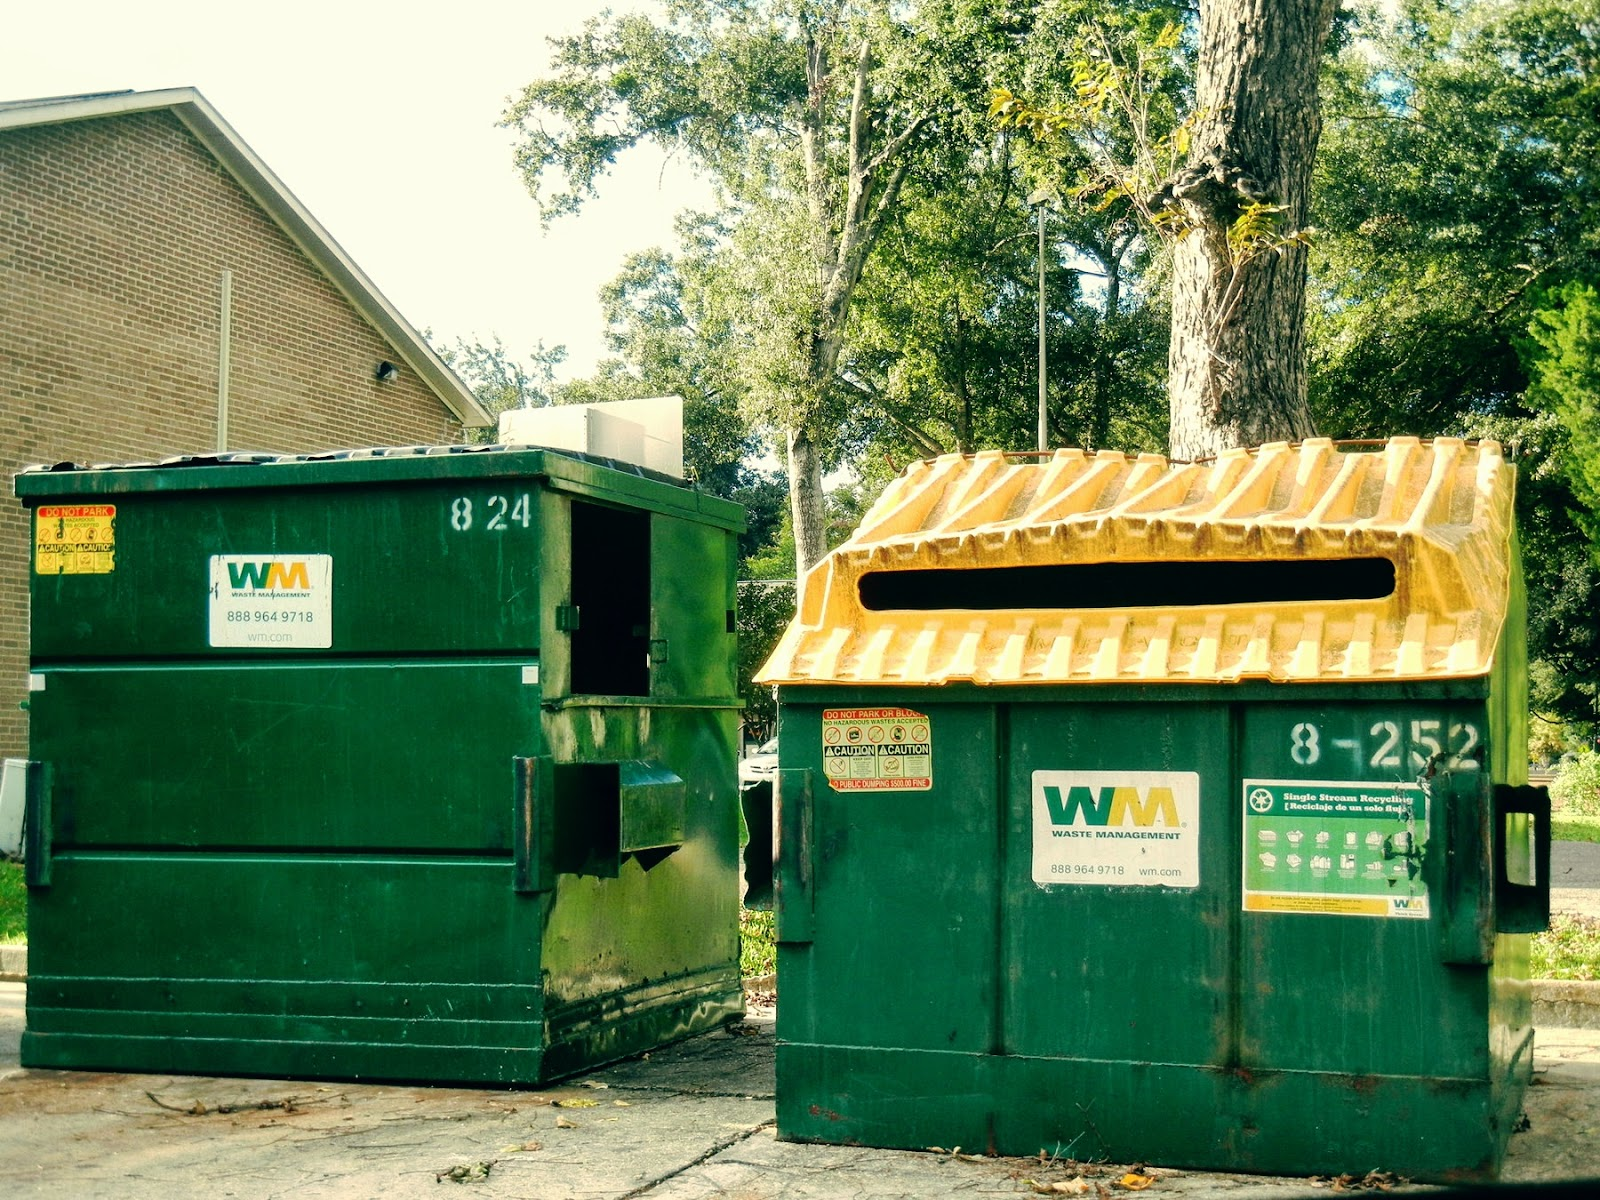 management next to the trash dumpsters now all i had to do was stop on my way out of the parking lot and empty my recycling bin much more convenient